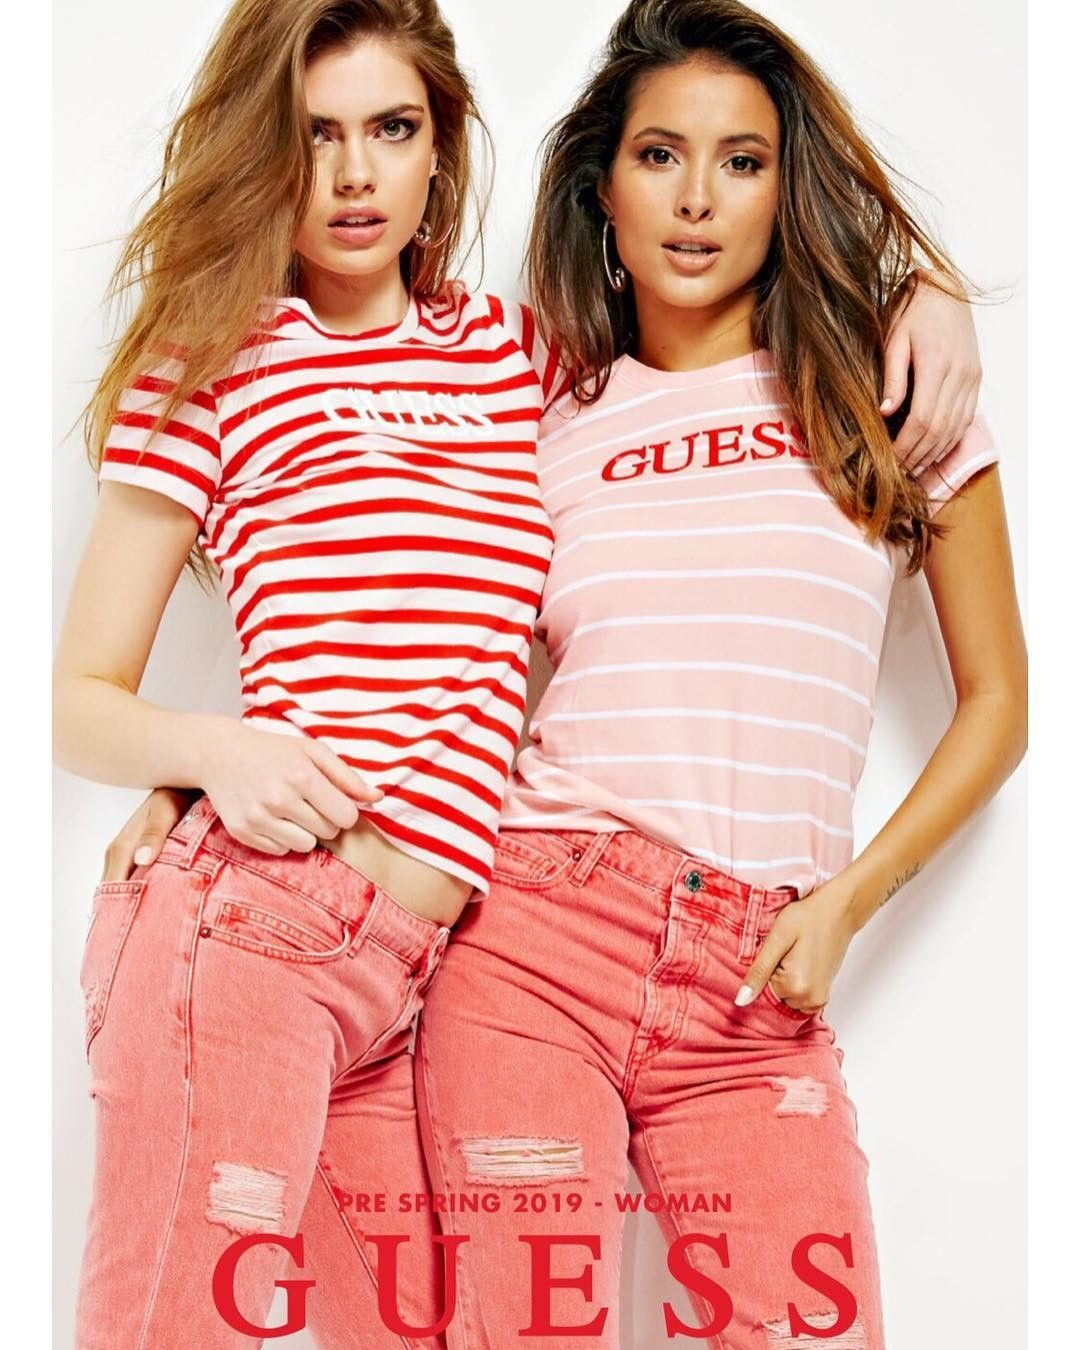 Sneak Peak of the GUESS 2019 Spring Collection    LoveGUESS in 2019 ... b3bb44f15bce